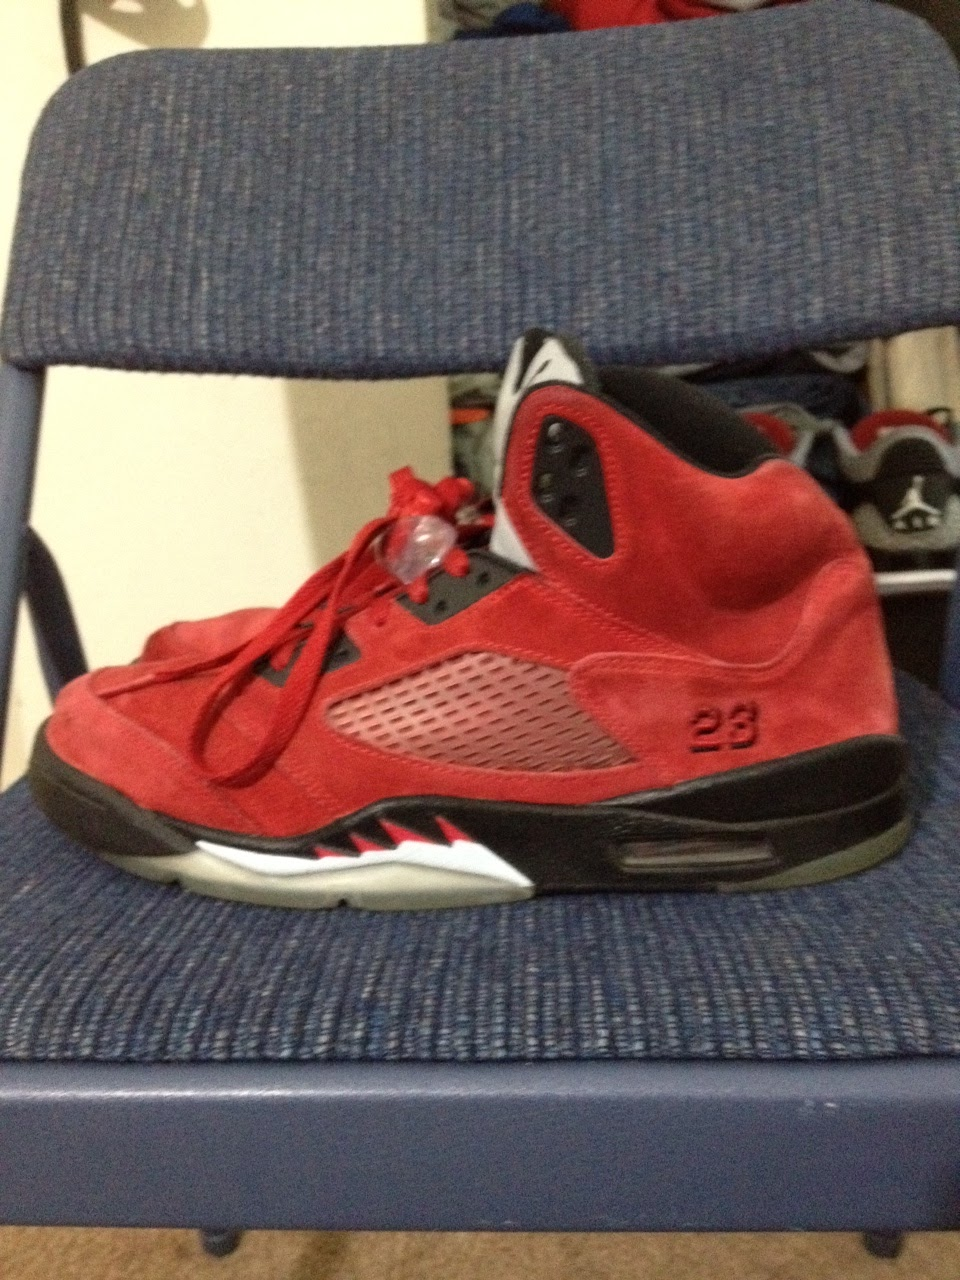 Raging Bull 5s Box | www.pixshark.com - Images Galleries ...